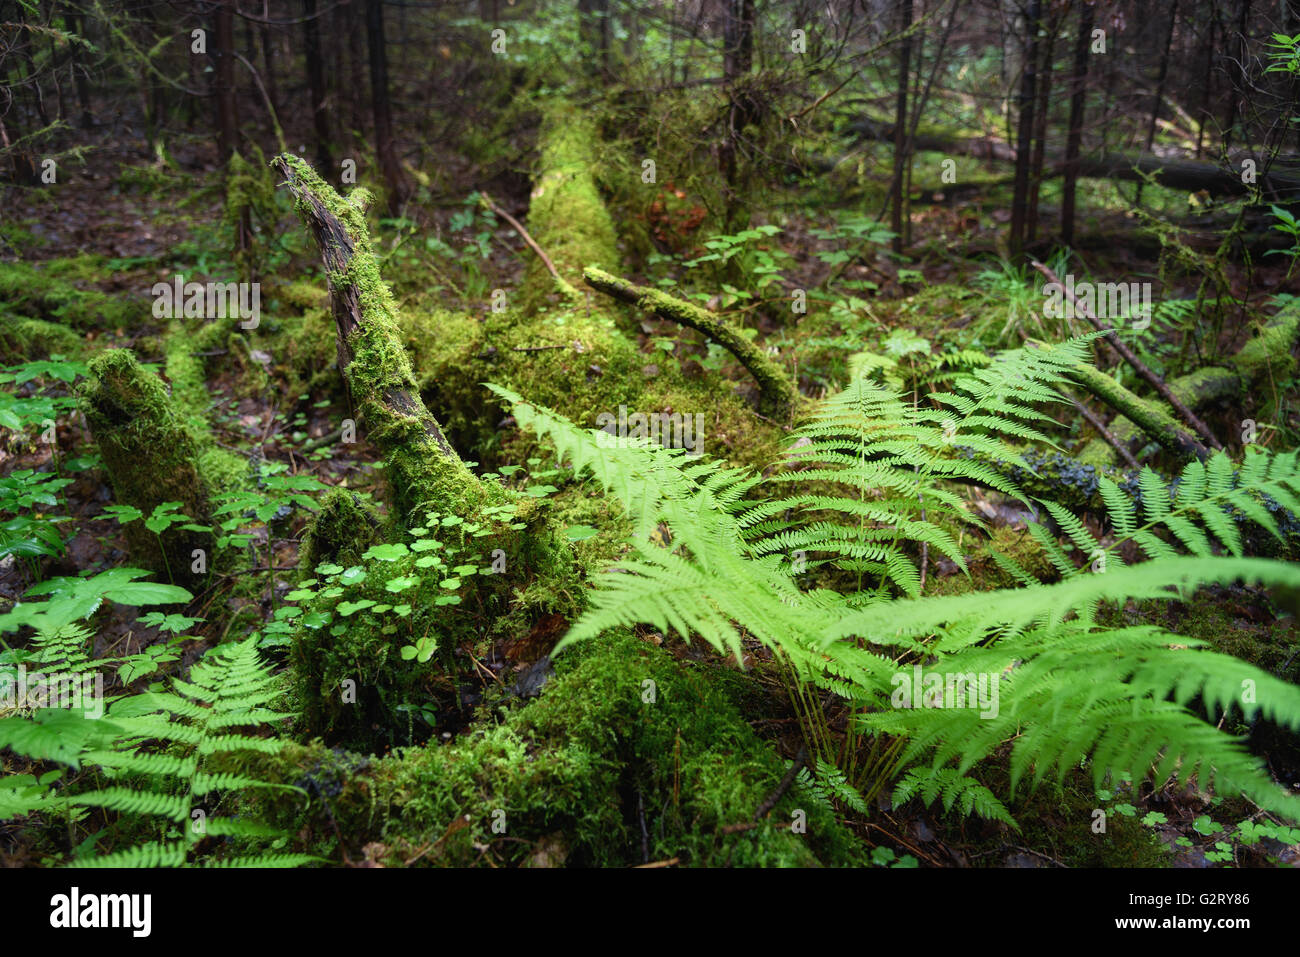 Fern, Wood Sorrel, Moss on tree in the forest. Selective focus Stock Photo